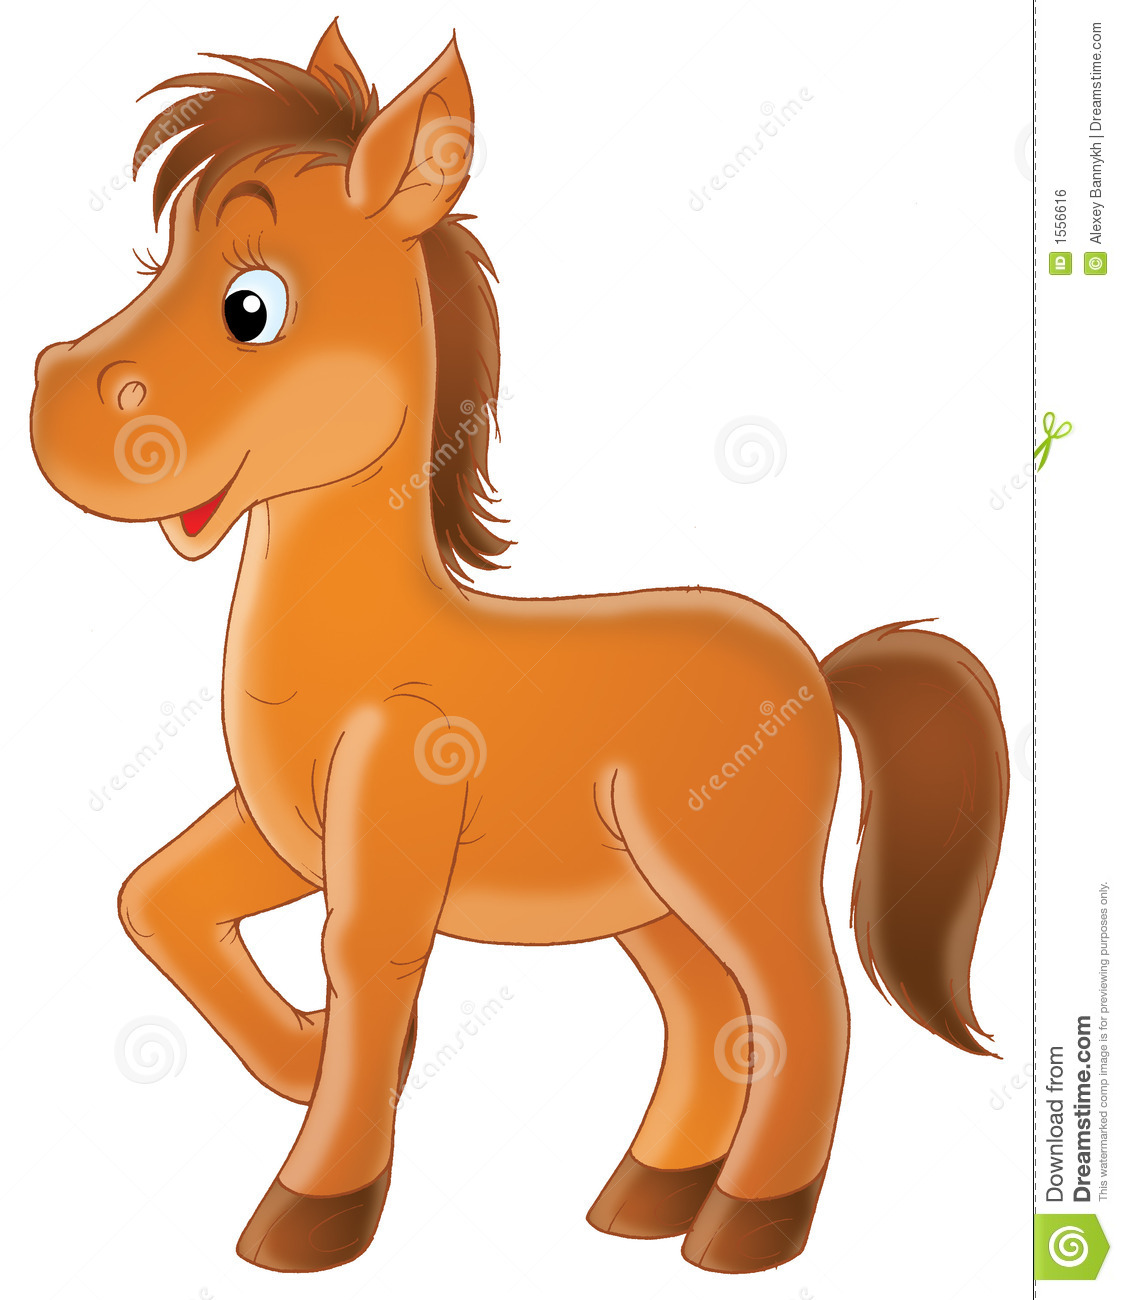 Foal clipart #14, Download drawings